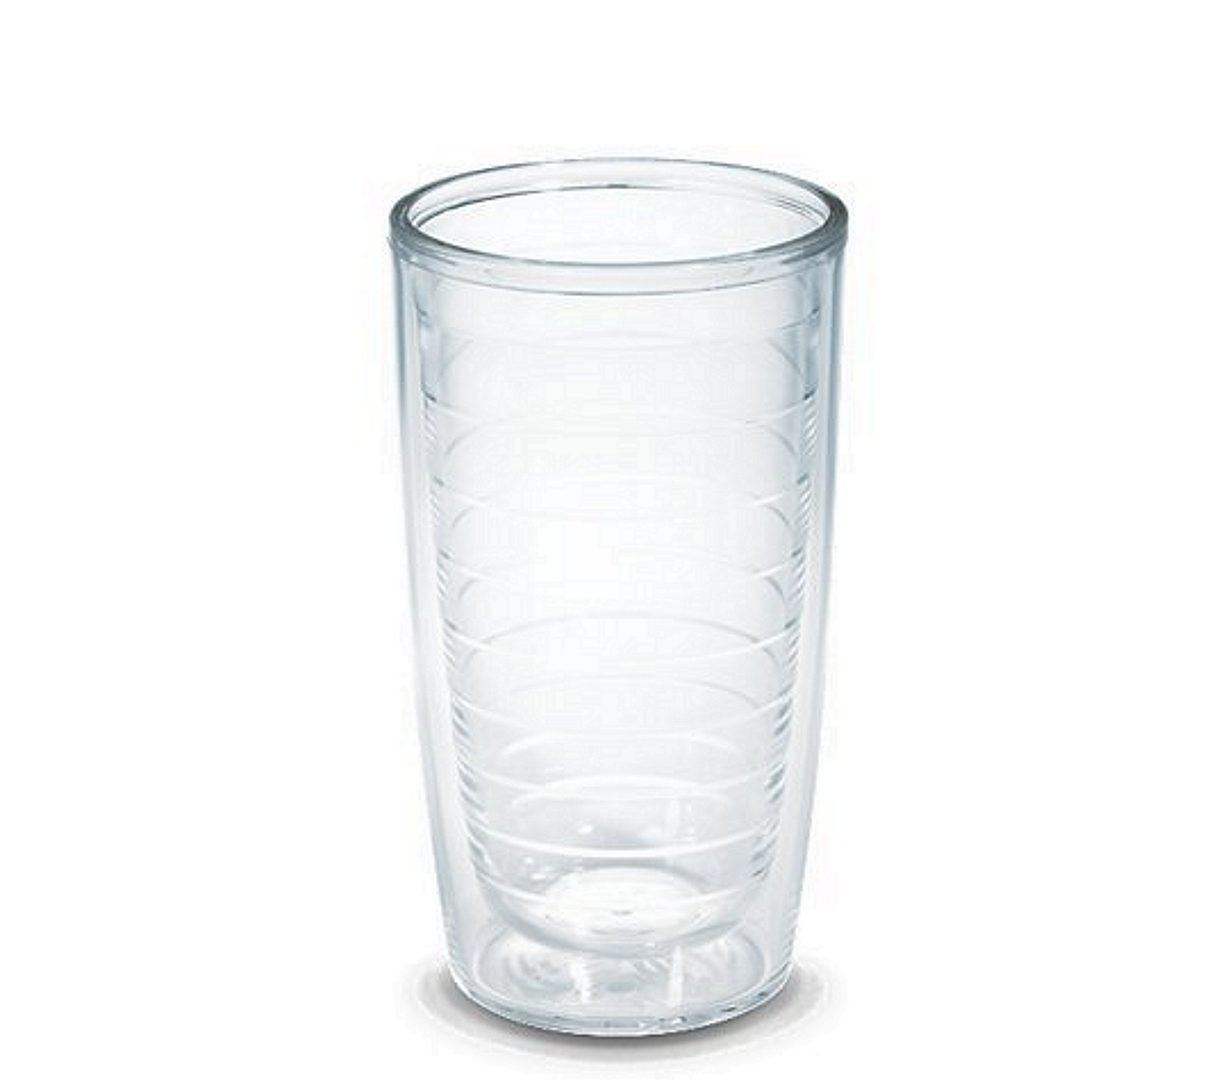 Tervis Clear & Colorful Insulated Tumbler